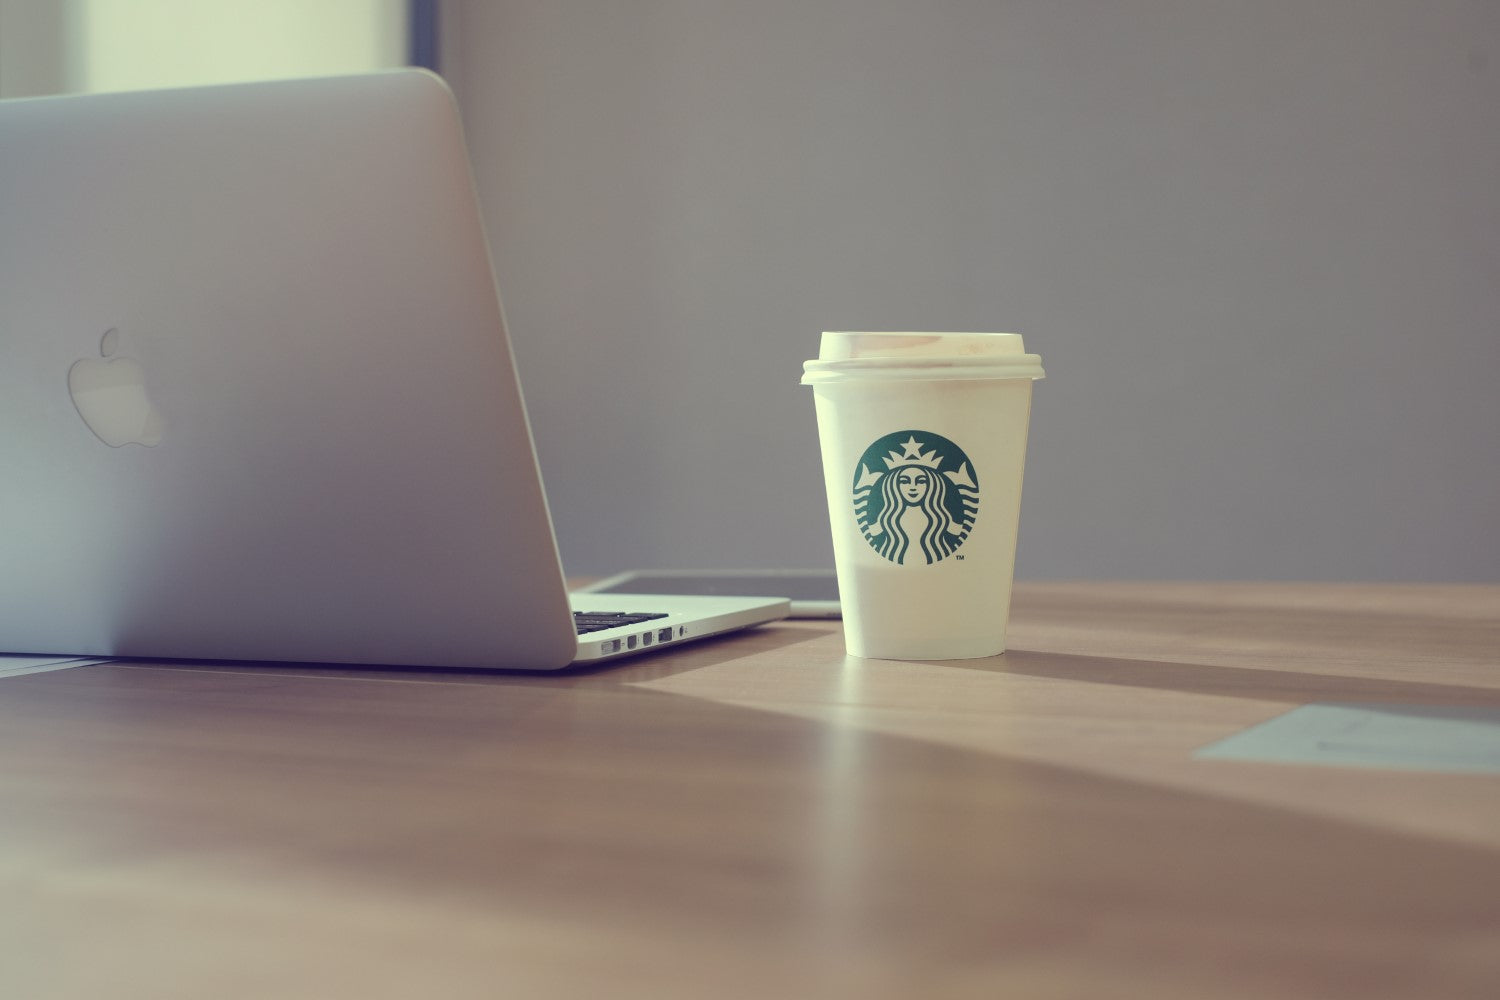 starbucks and laptop